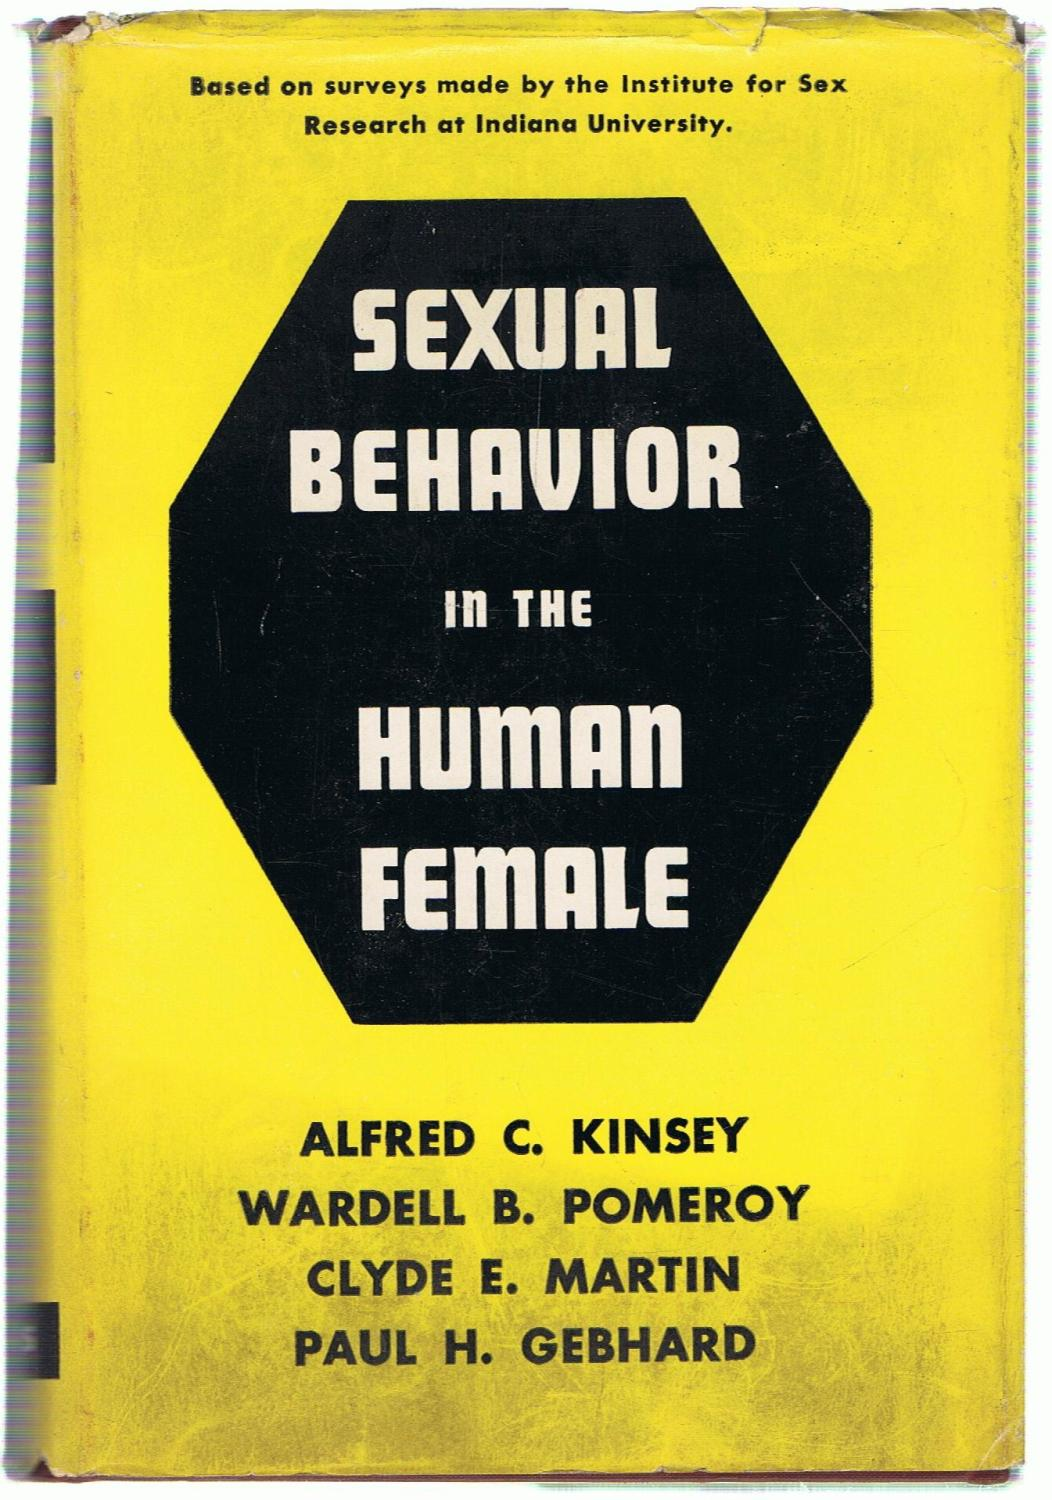 Sexual behavior in the human male images 70